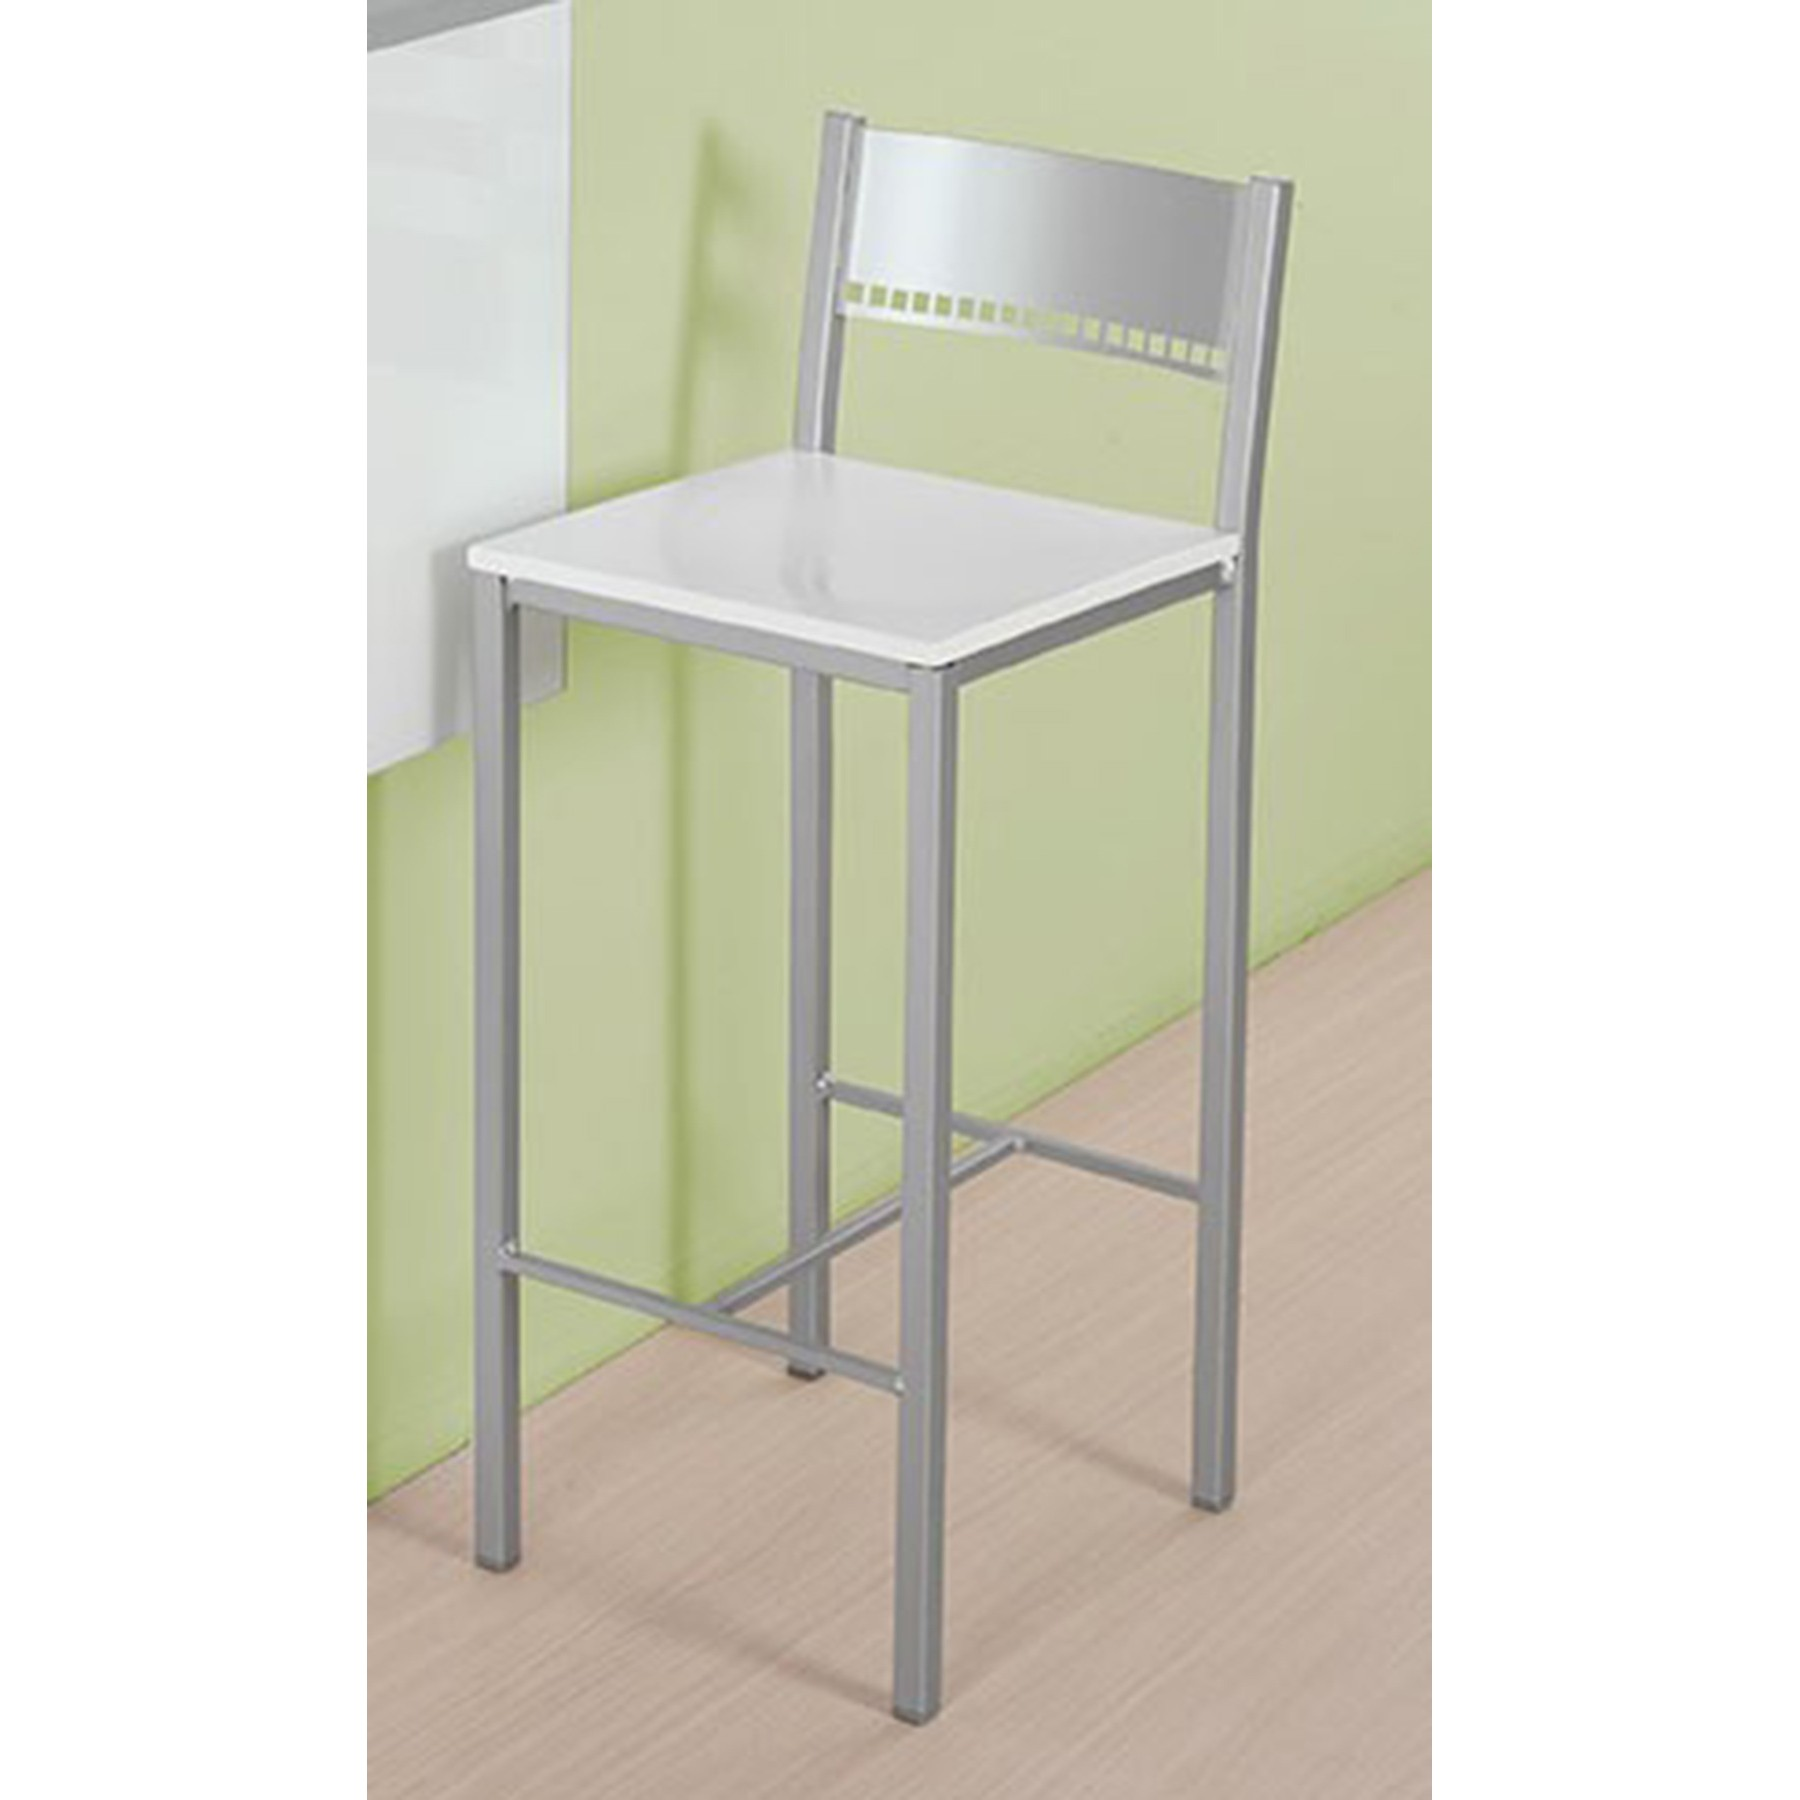 Conjunto de mesa para pared y taburetes de cocina modelo e for Mesa abatible pared cocina